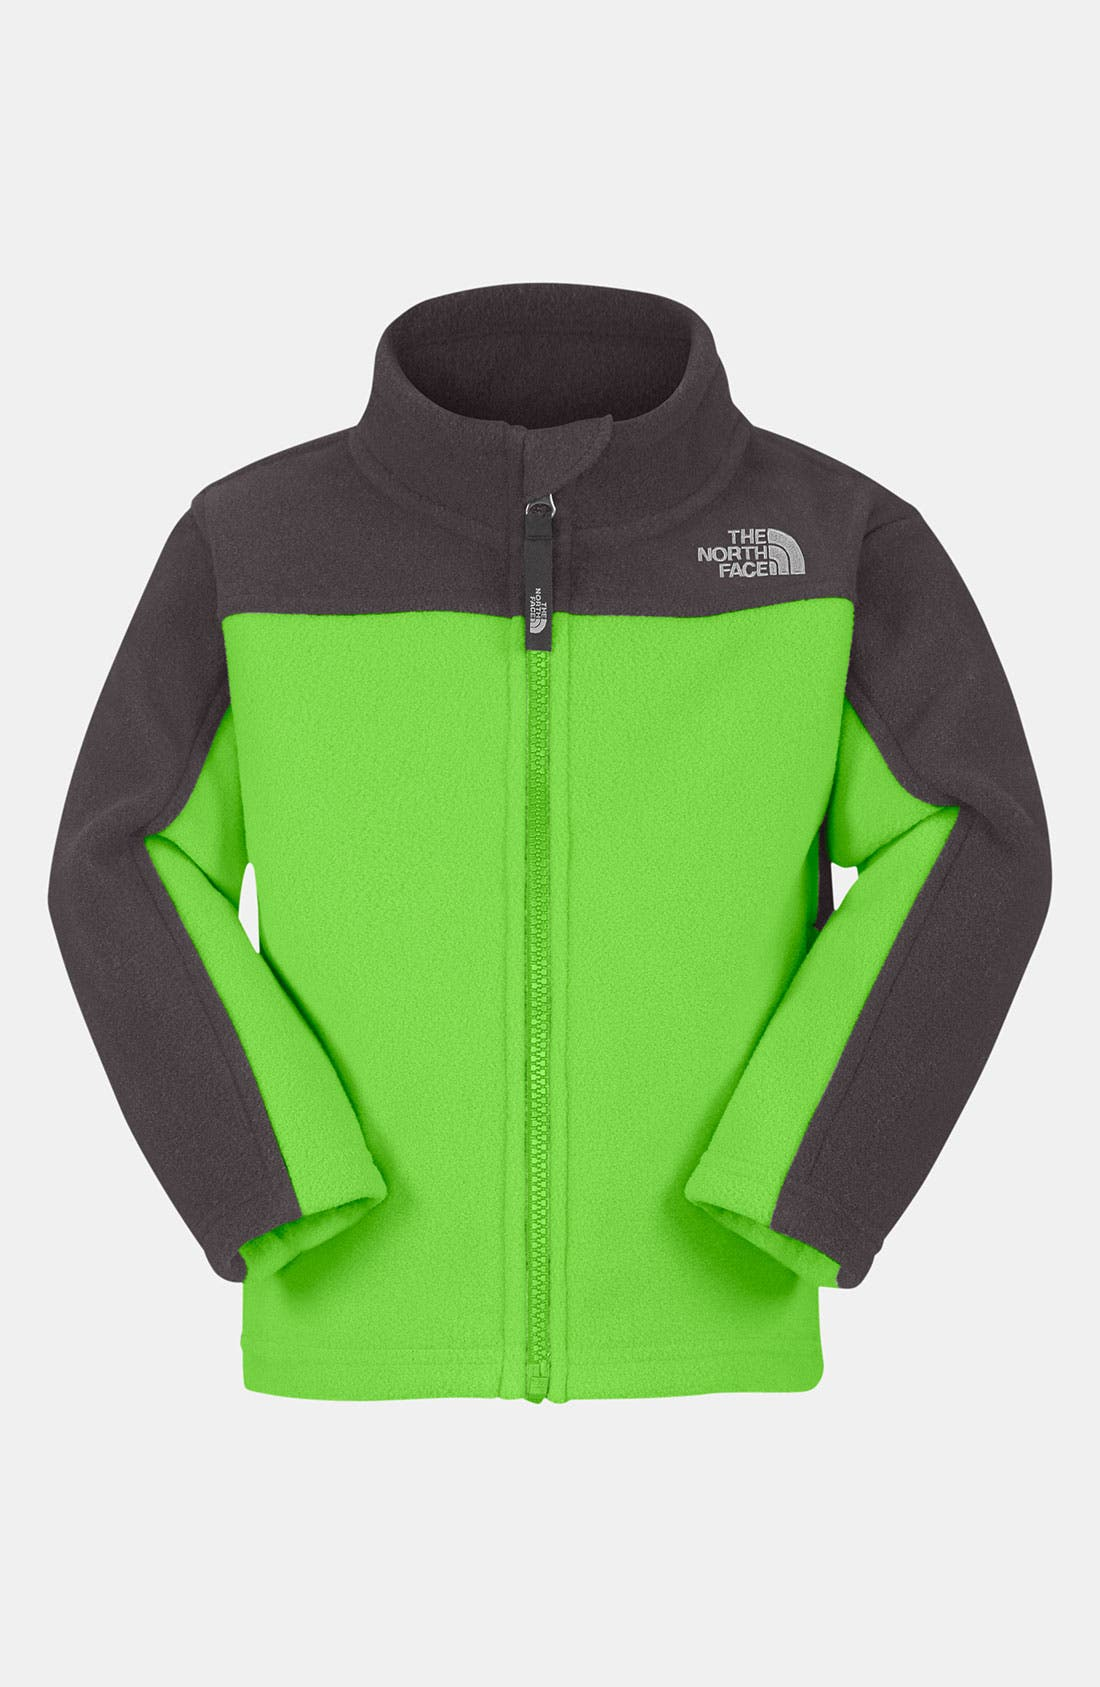 Main Image - The North Face 'Khumbu' Fleece Jacket (Toddler)